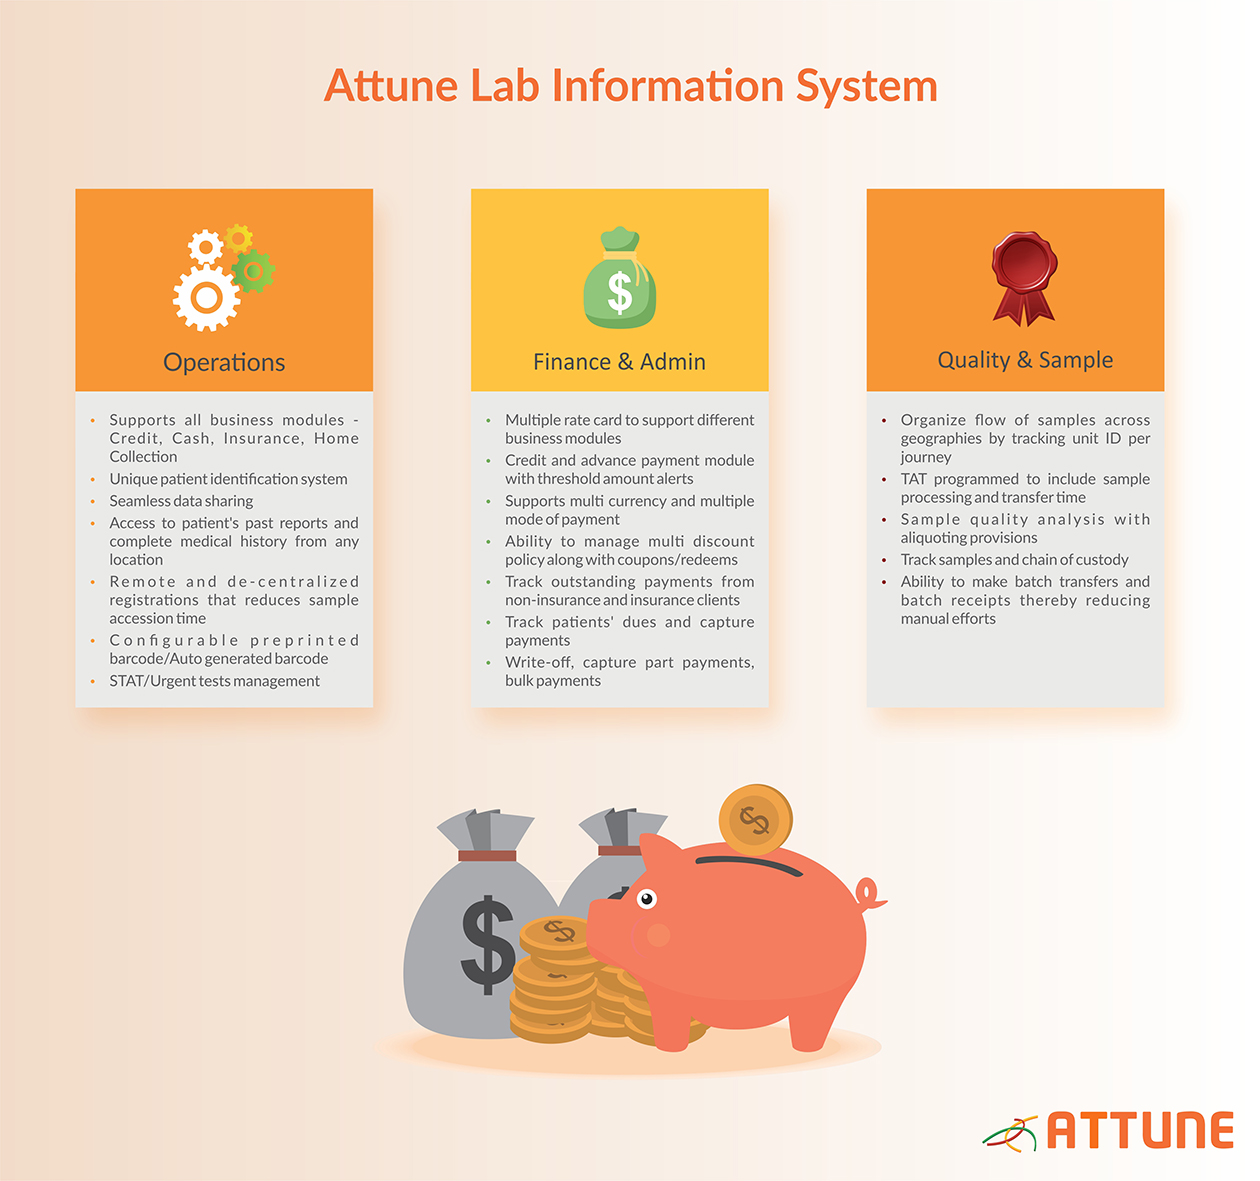 Attune LIS Billing & Registration Infographic